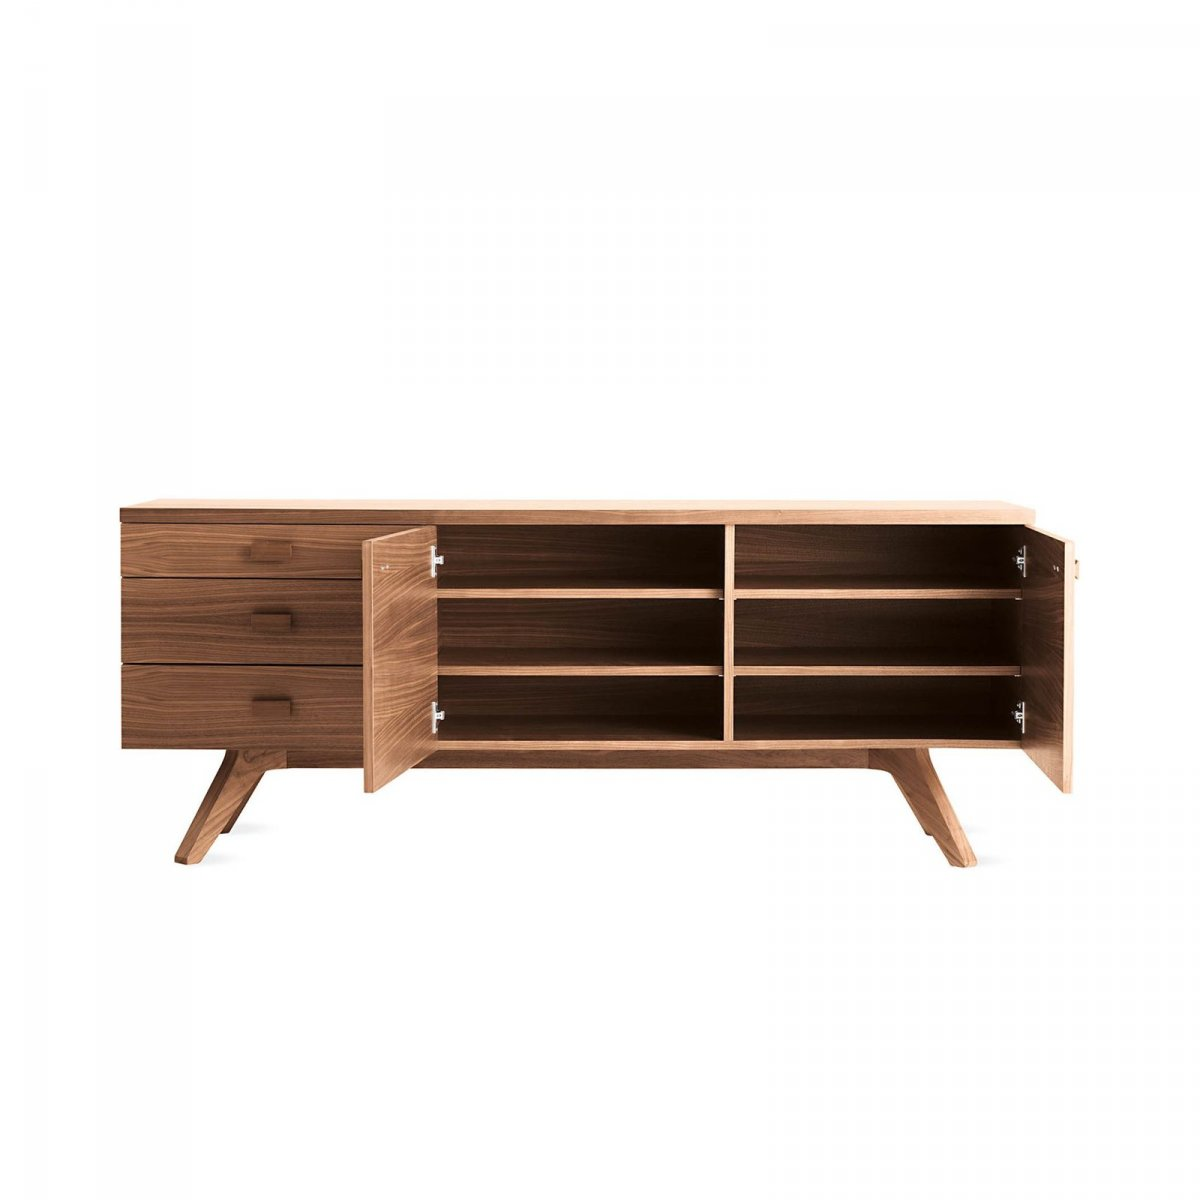 Cross Sideboard, walnut, doors opened.